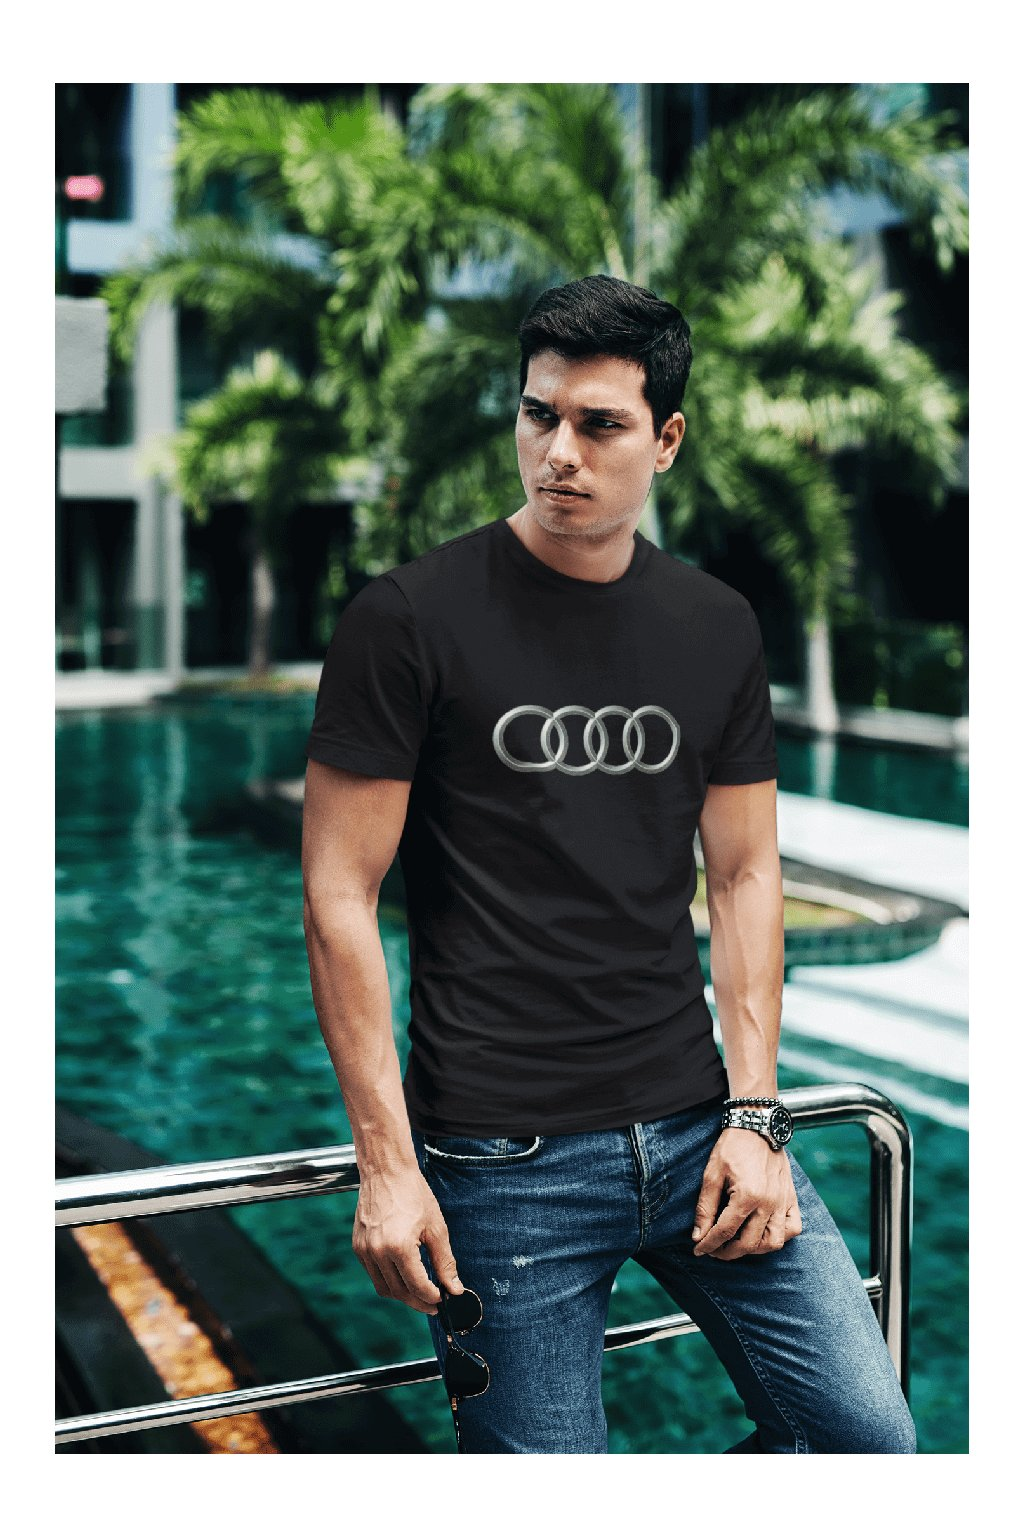 t shirt mockup of a fashionable man posing by a pool 430 el (14)